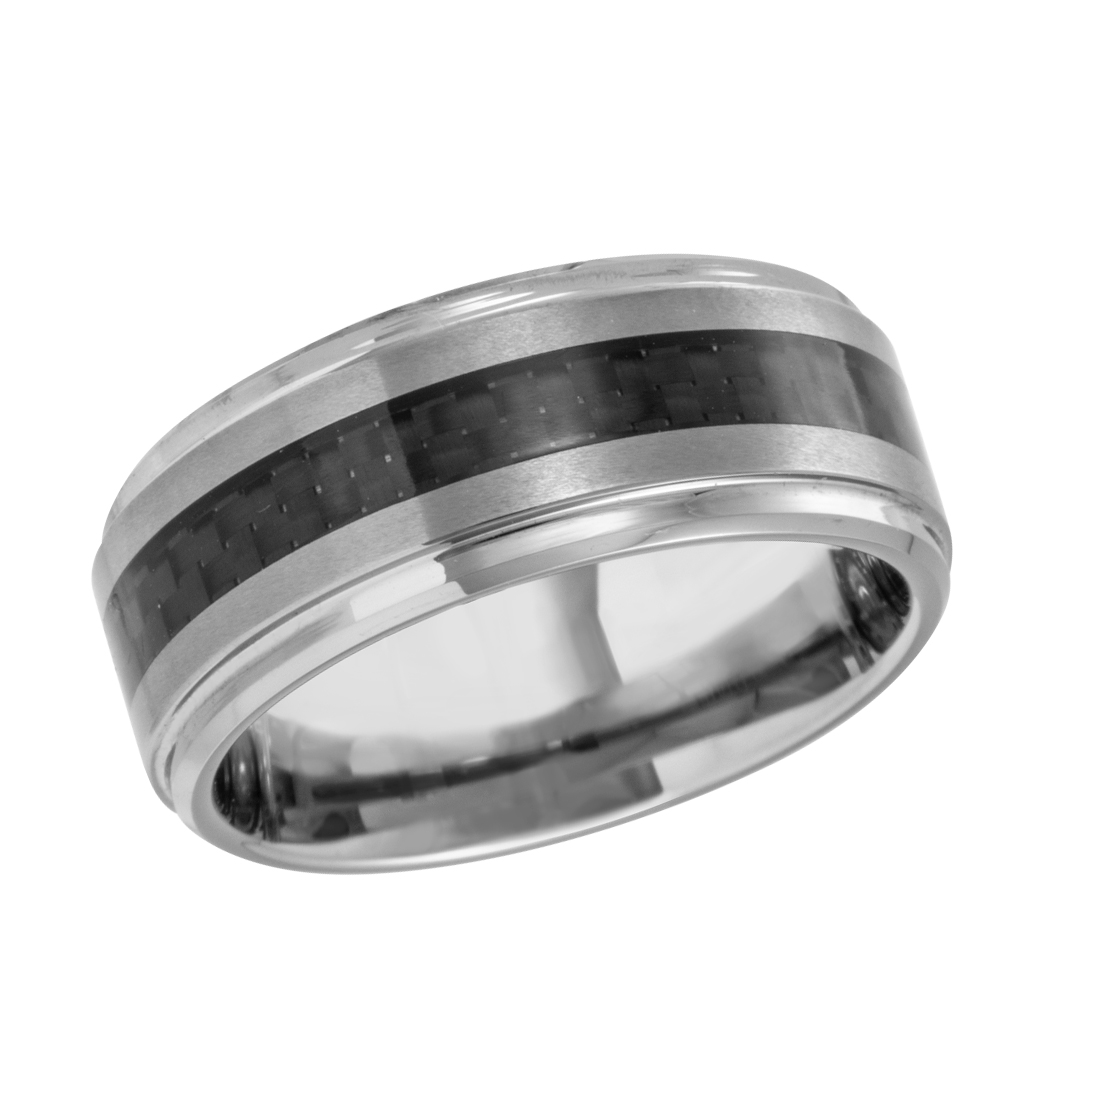 Men's Madani Tungsten/Carbon wedding band